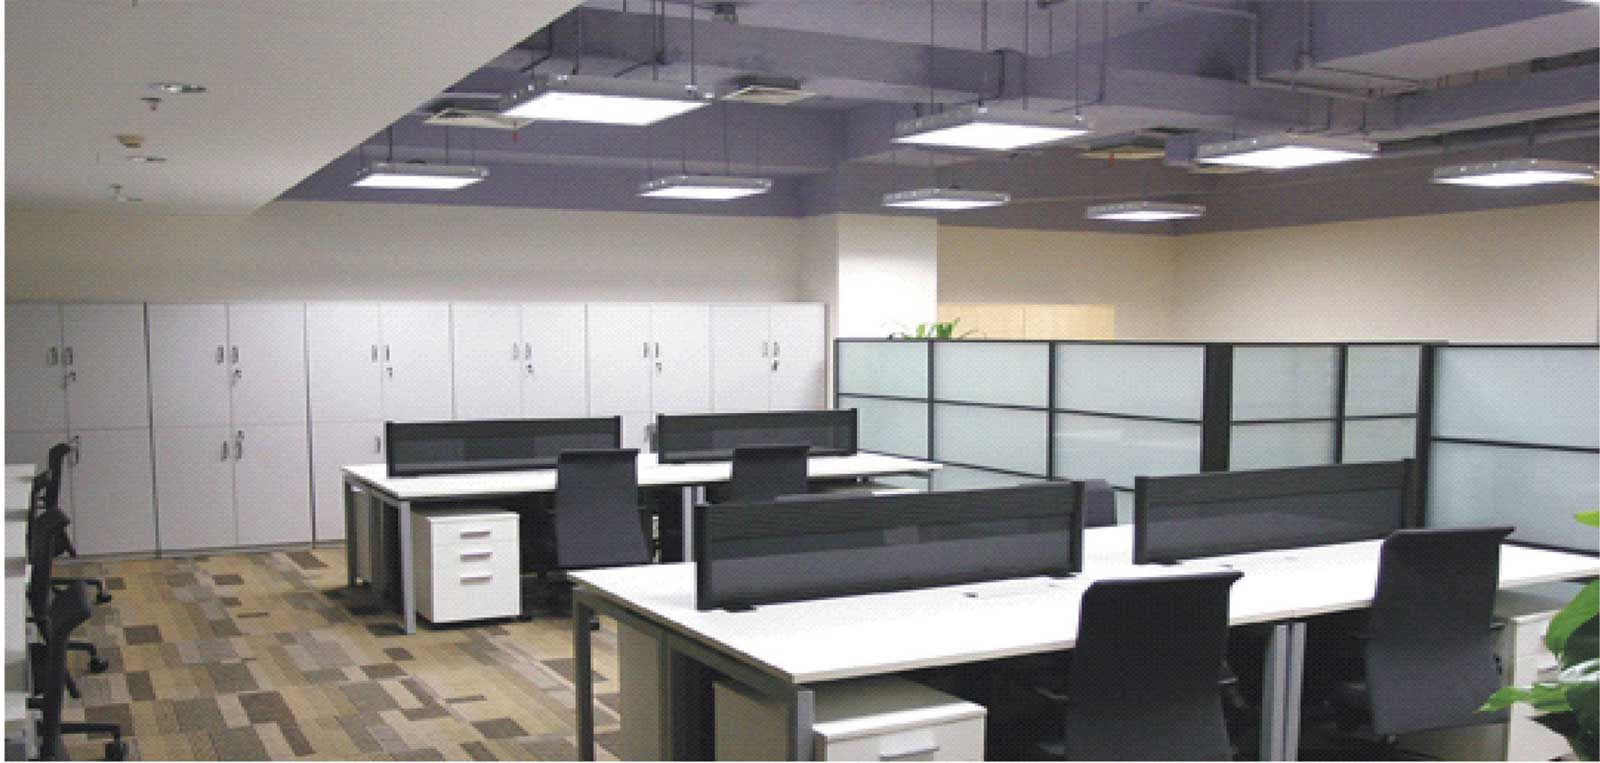 Admirable Simple Corporate Office Designs Design Largest Home Design Picture Inspirations Pitcheantrous